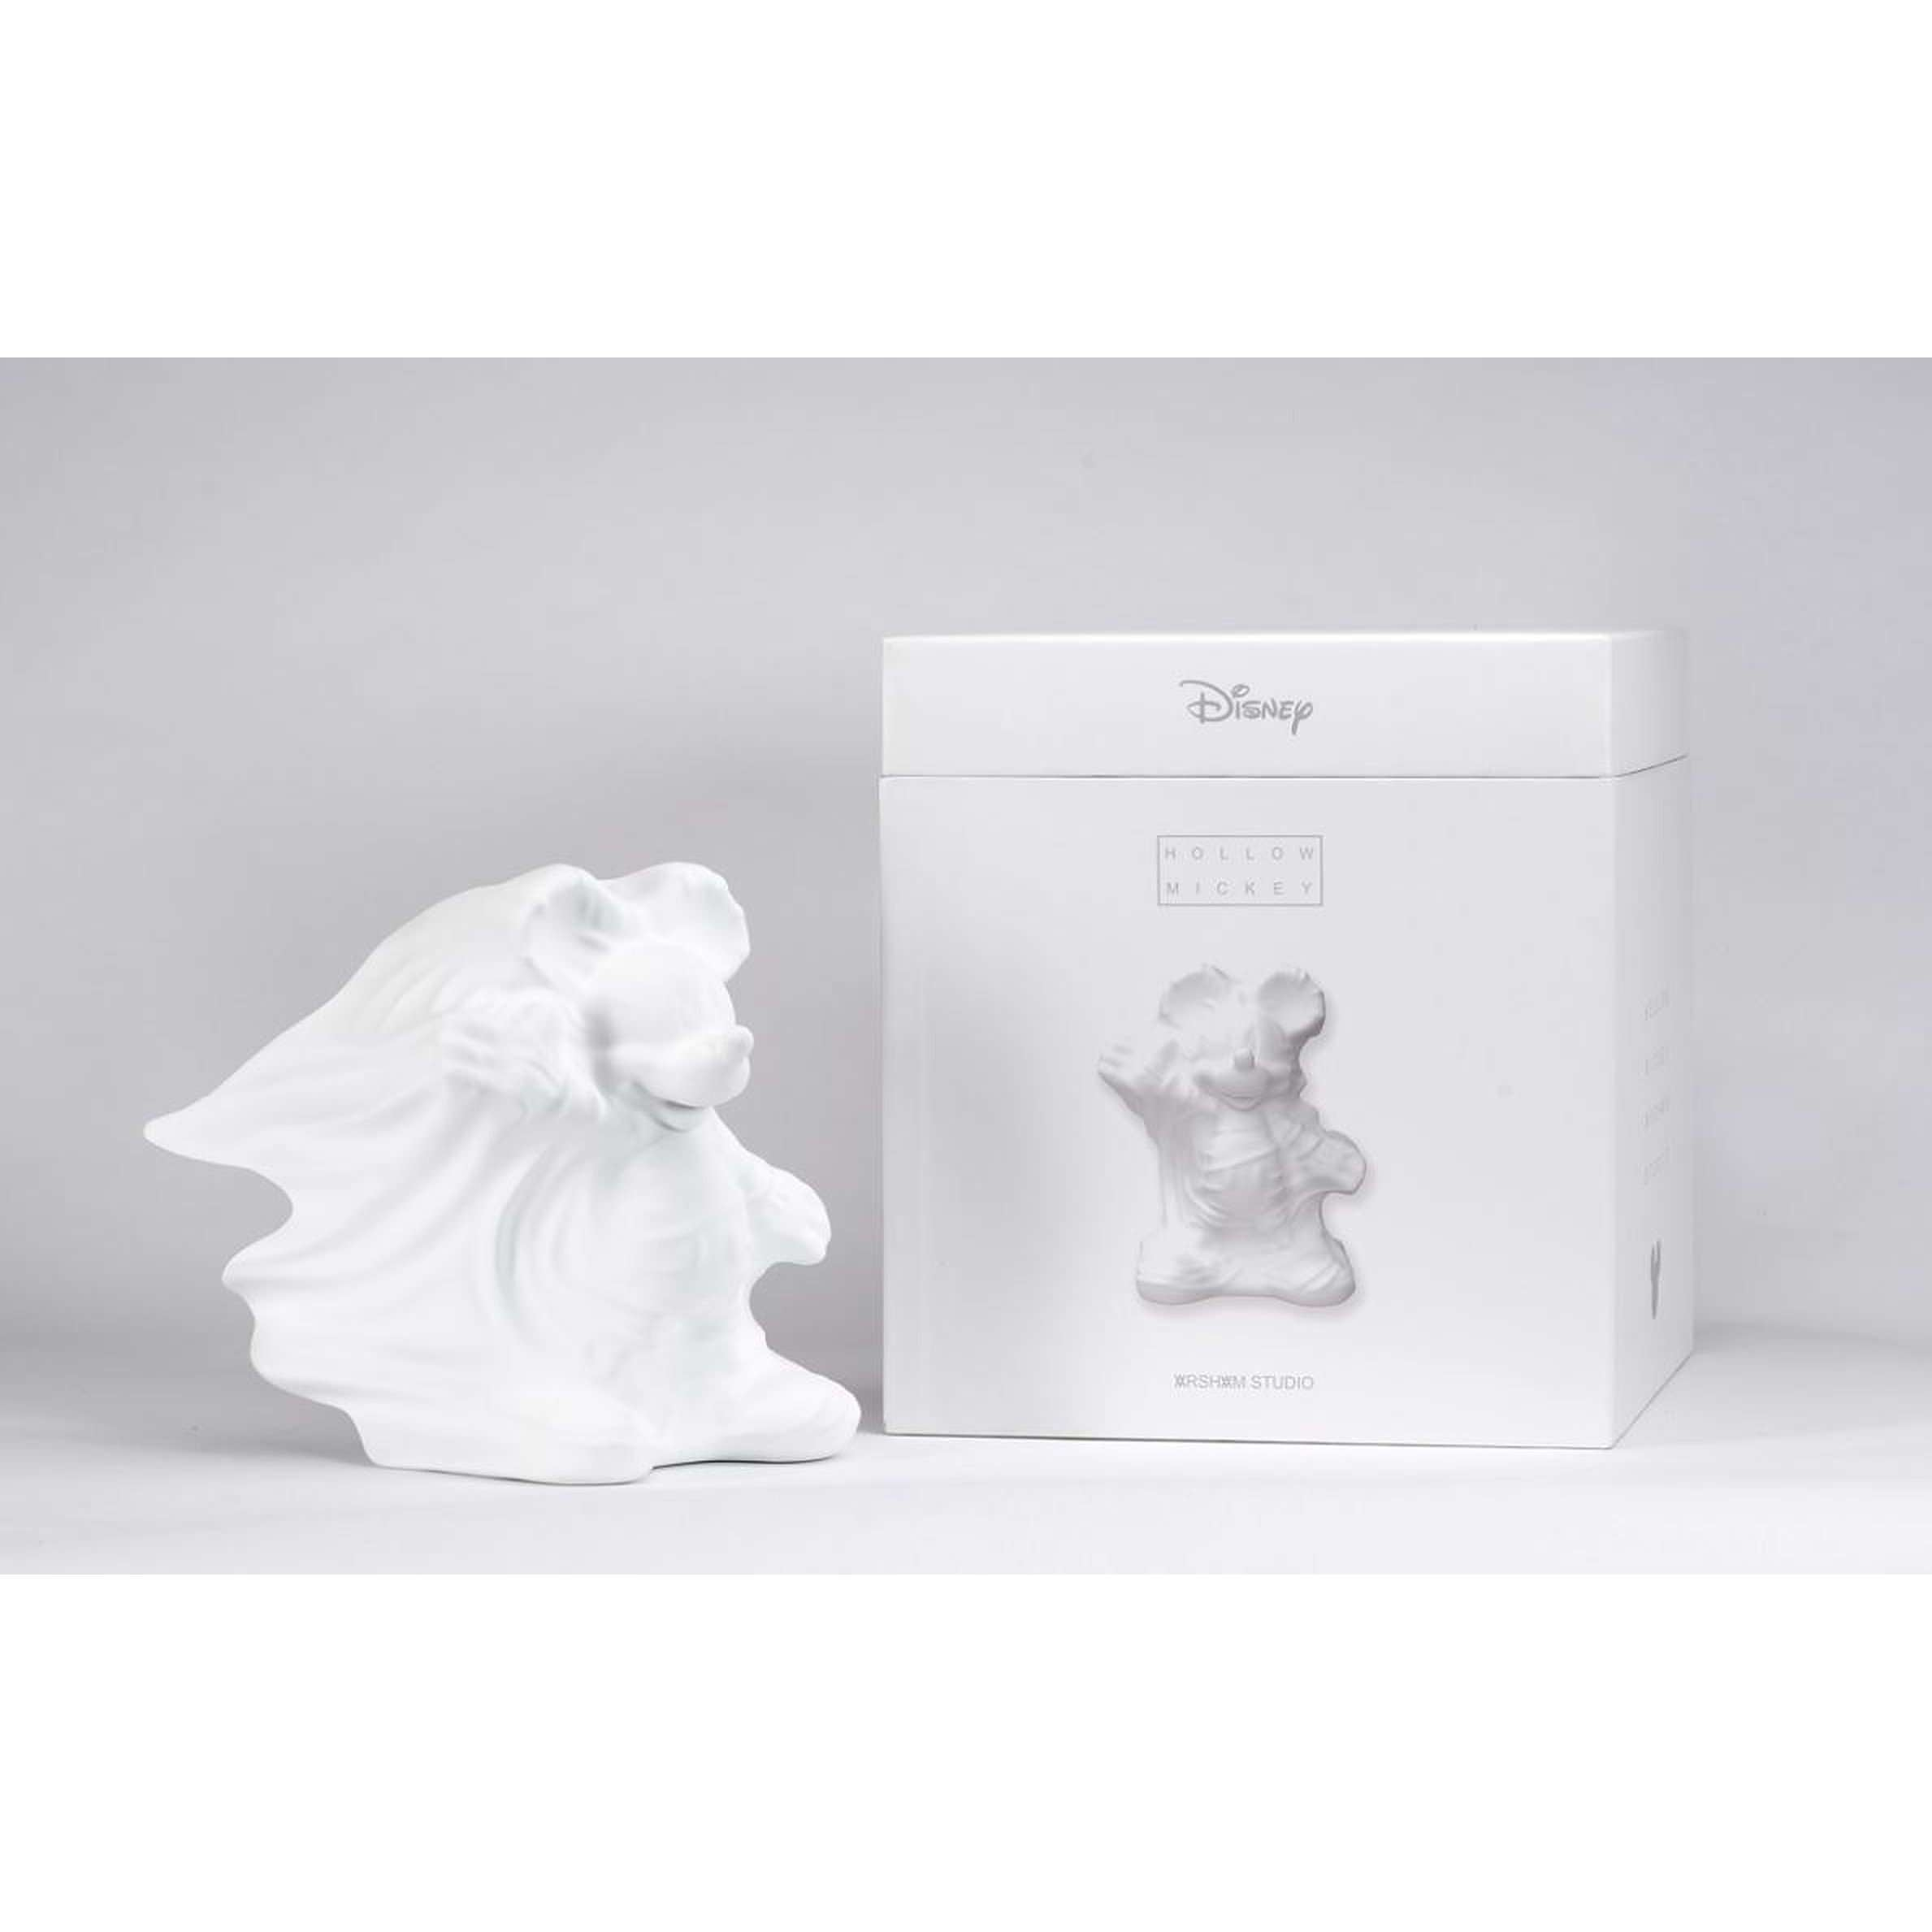 Daniel Arsham x Disney APPortfolio, Hollow Mickey, 2019 | Lougher Contemporary